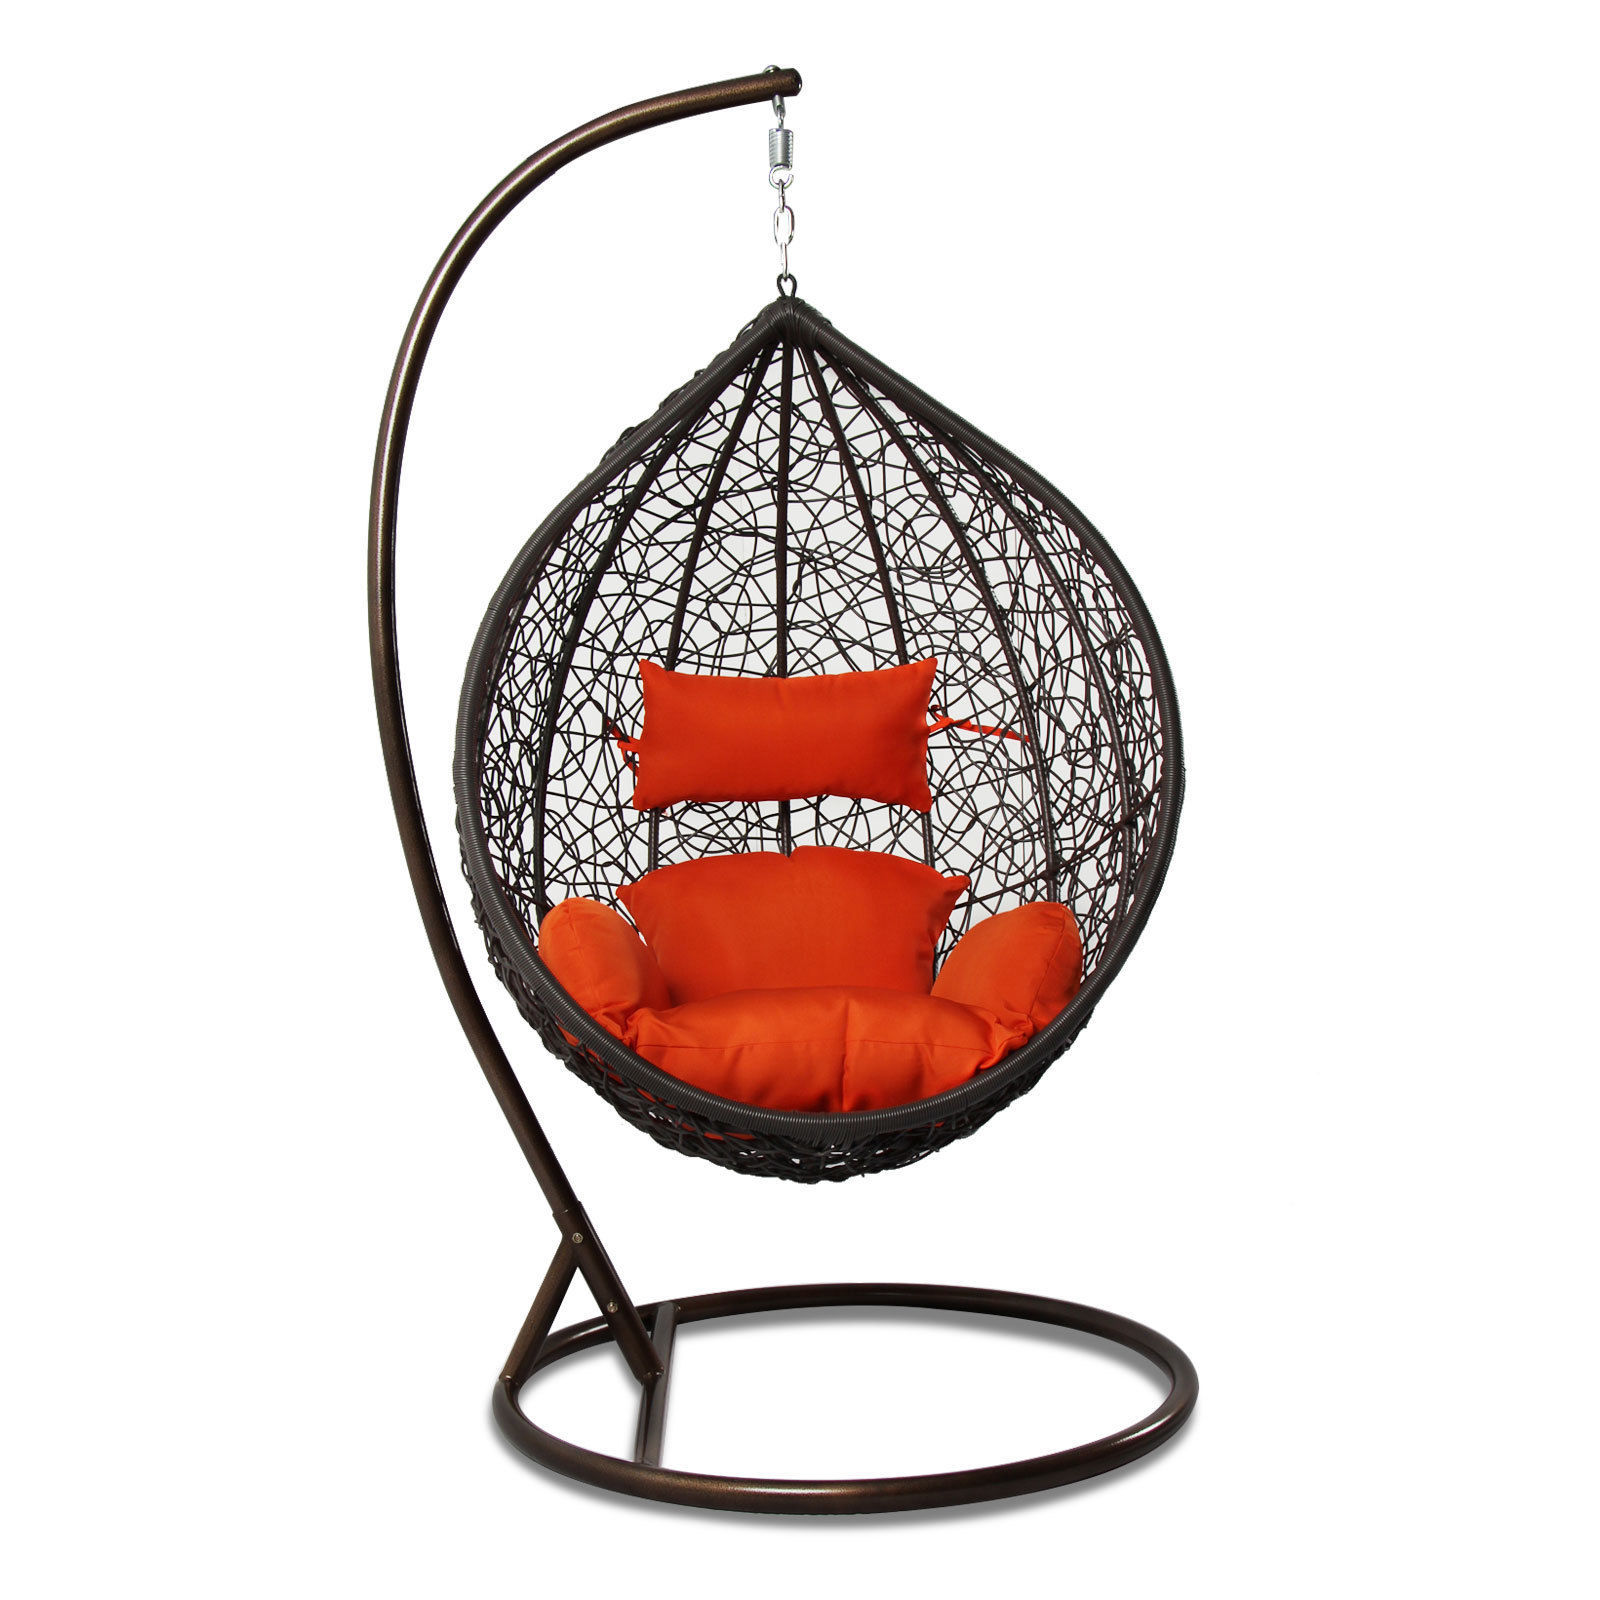 egg chair swing best guitar stool rattan outdoor wicker hanging shape stand porch